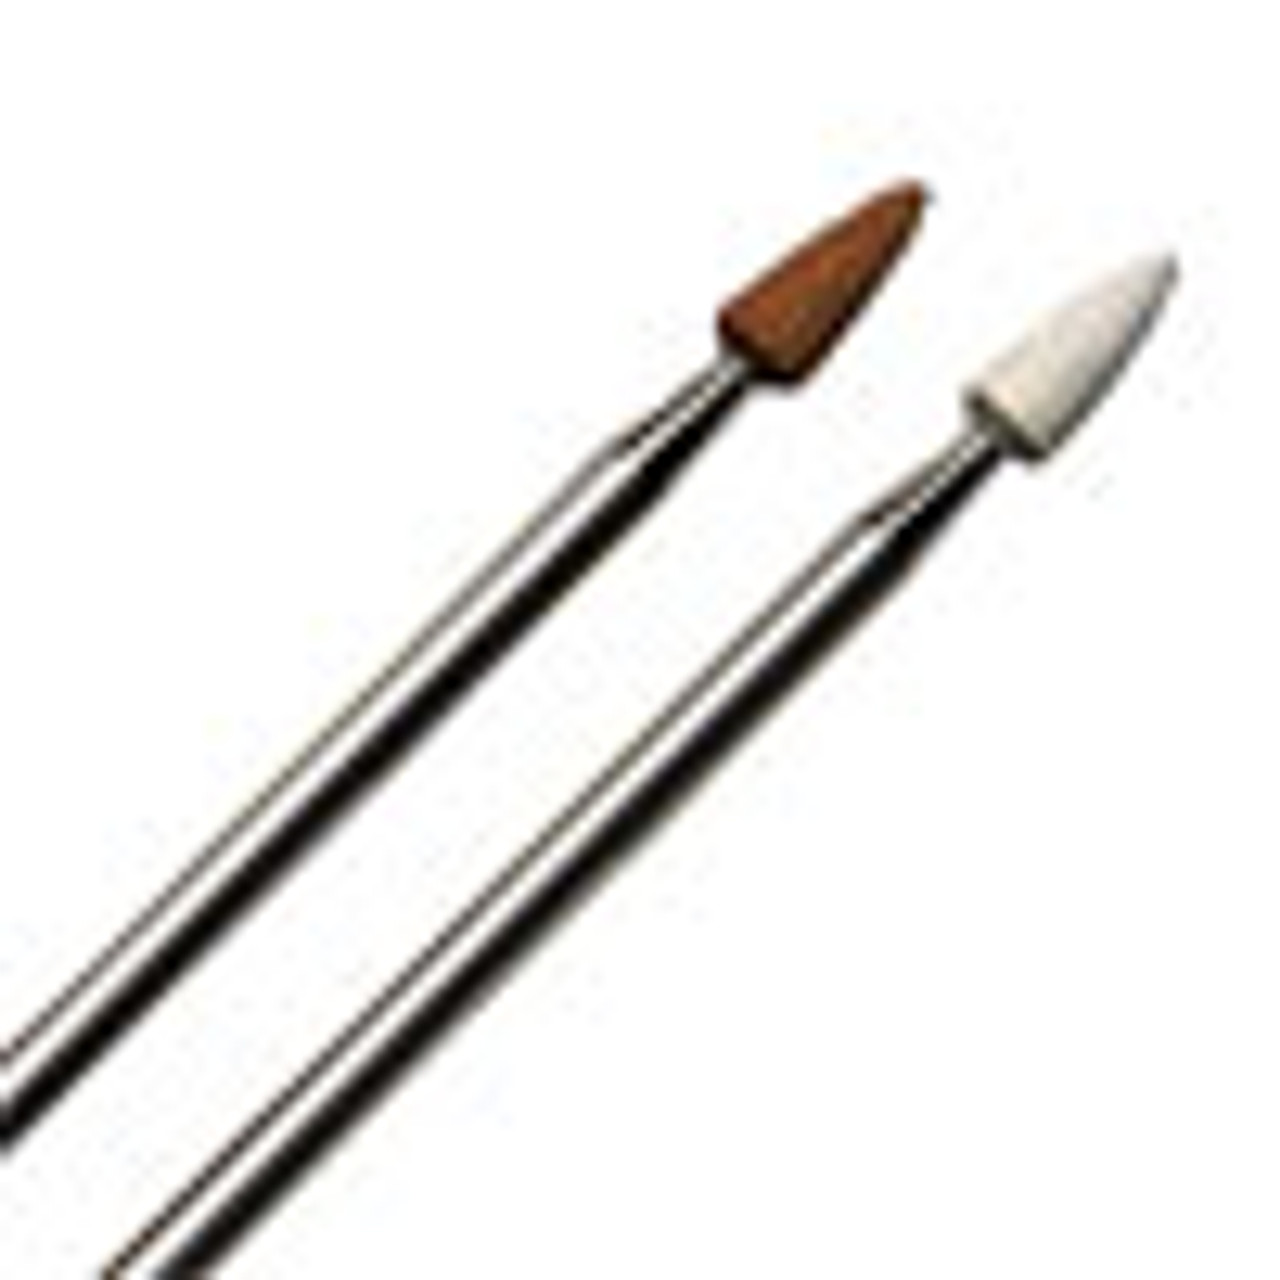 """Aluminum Oxide Point Flame 1/8"""" (Red) 120 grit and (White) 400 grit."""